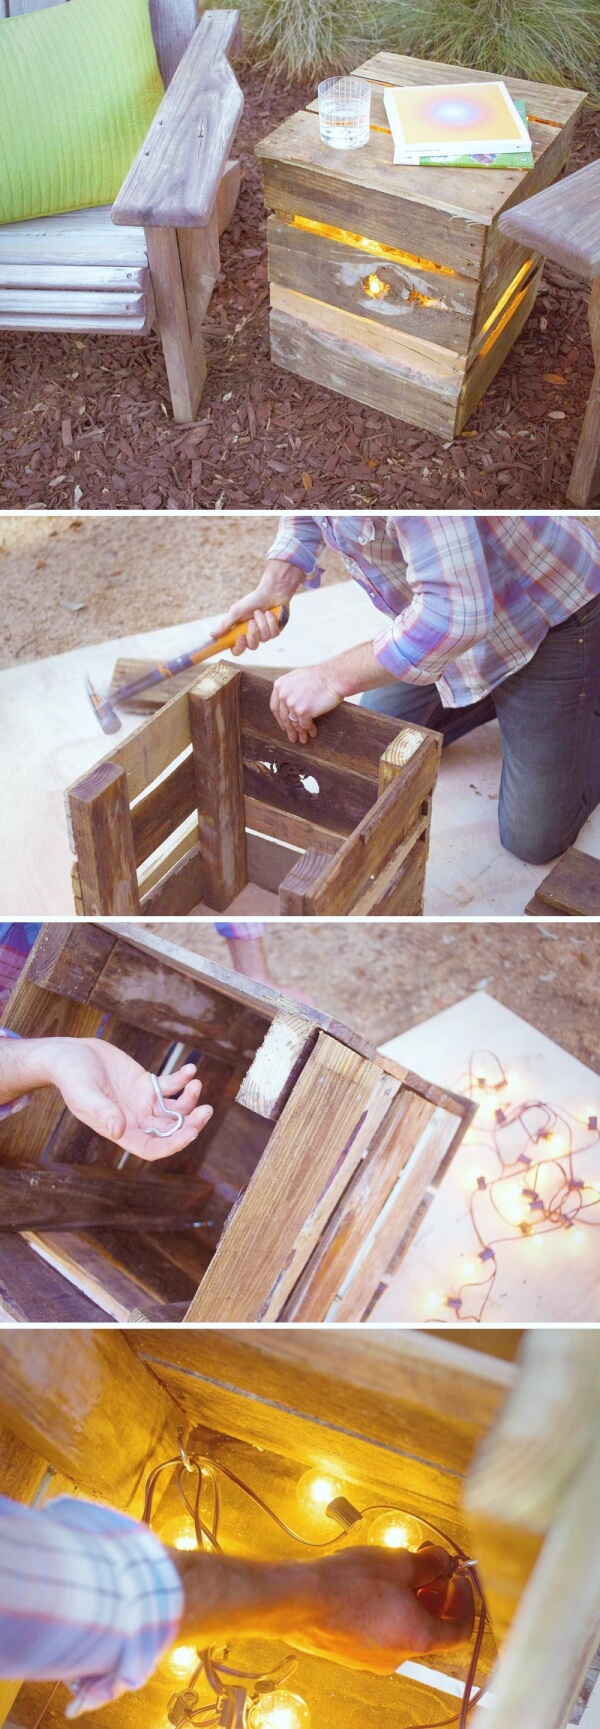 DIY Lights from Recycled Pallet | Creative DIY Garden Lantern Ideas - FarmFoodFamily.com